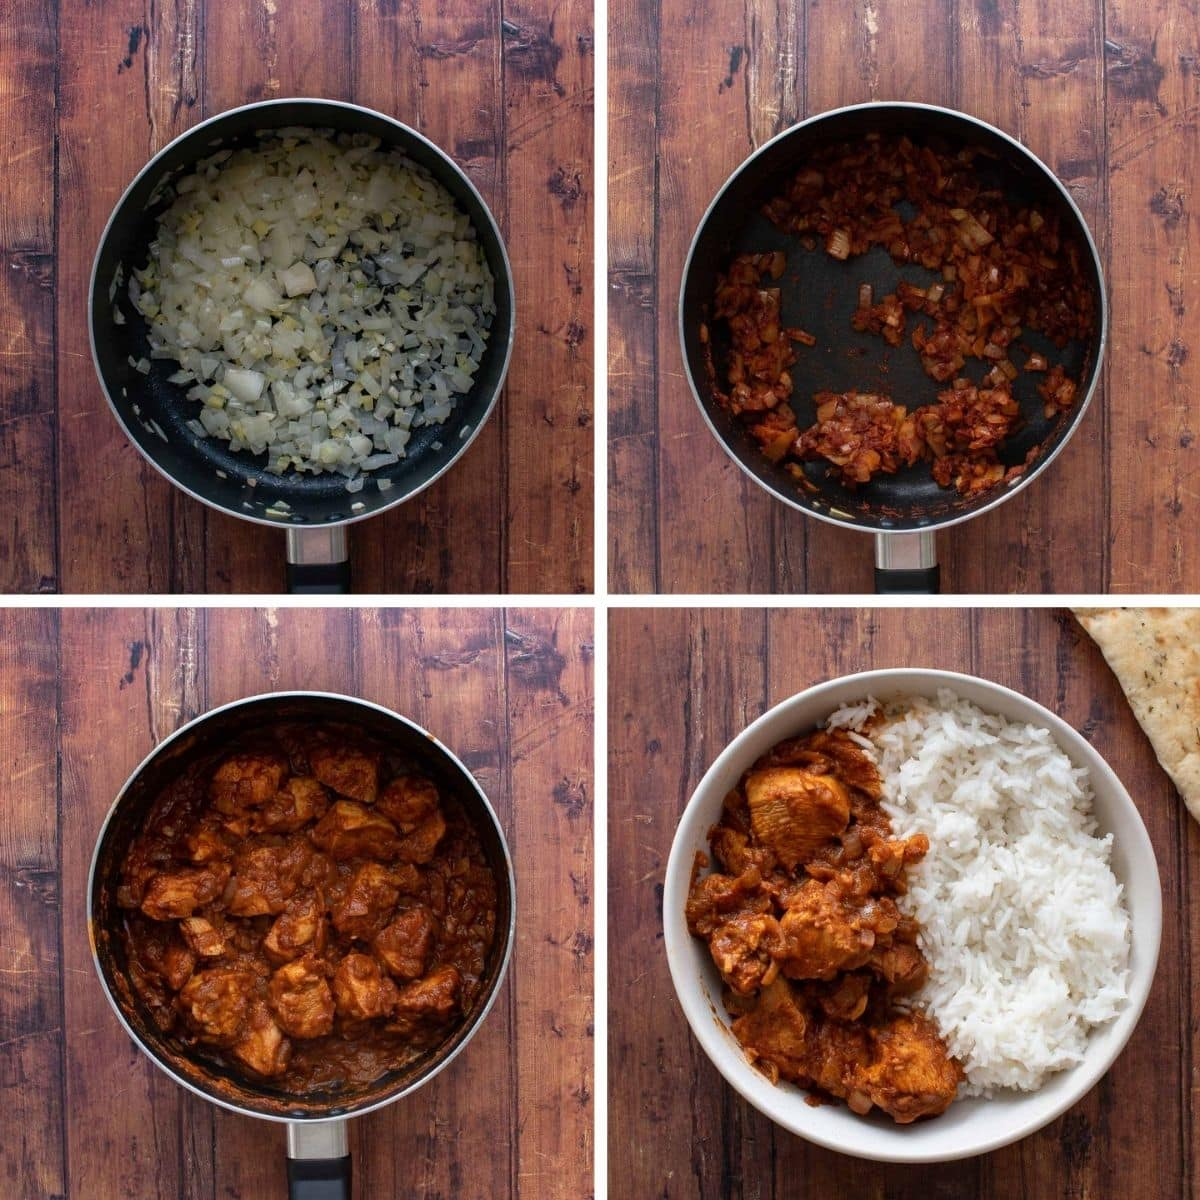 Step by step instructions showing how to make chicken rogan josh curry.